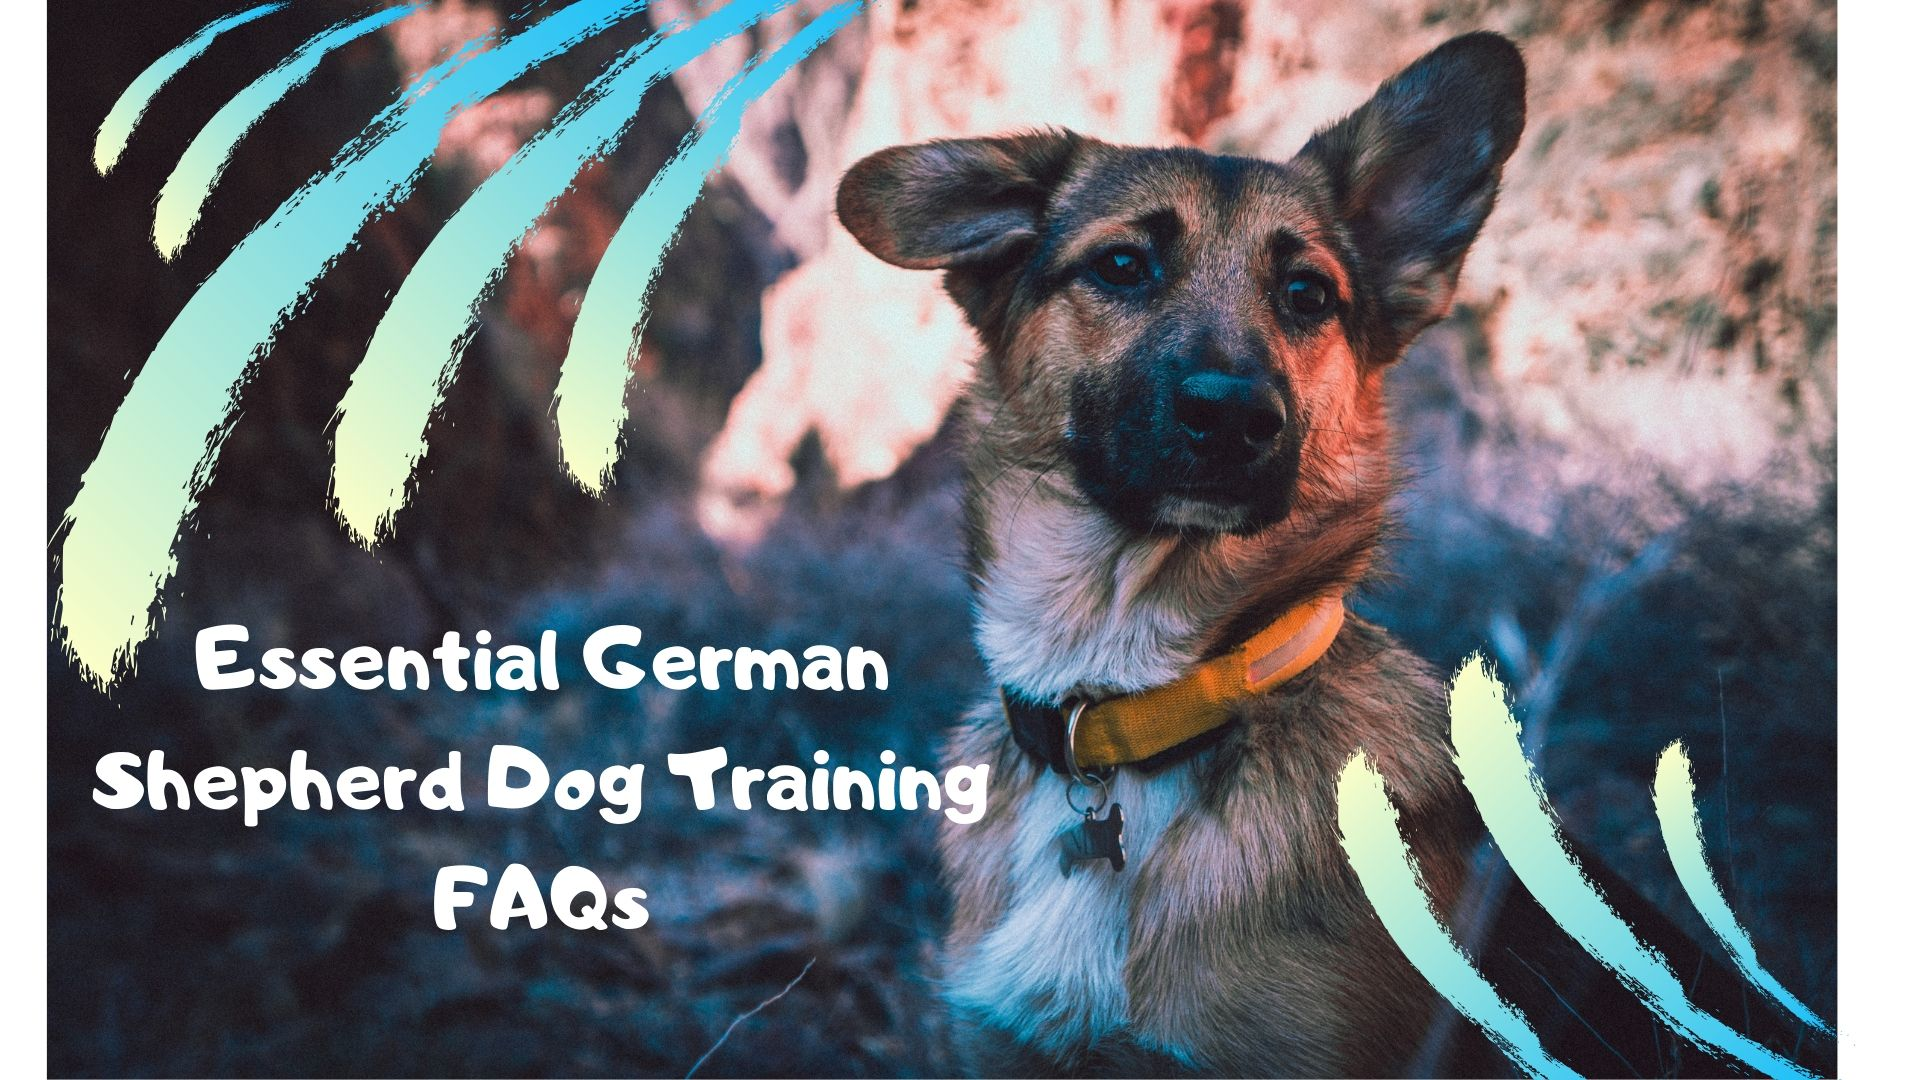 Essential German Shepherd Dog Training FAQs